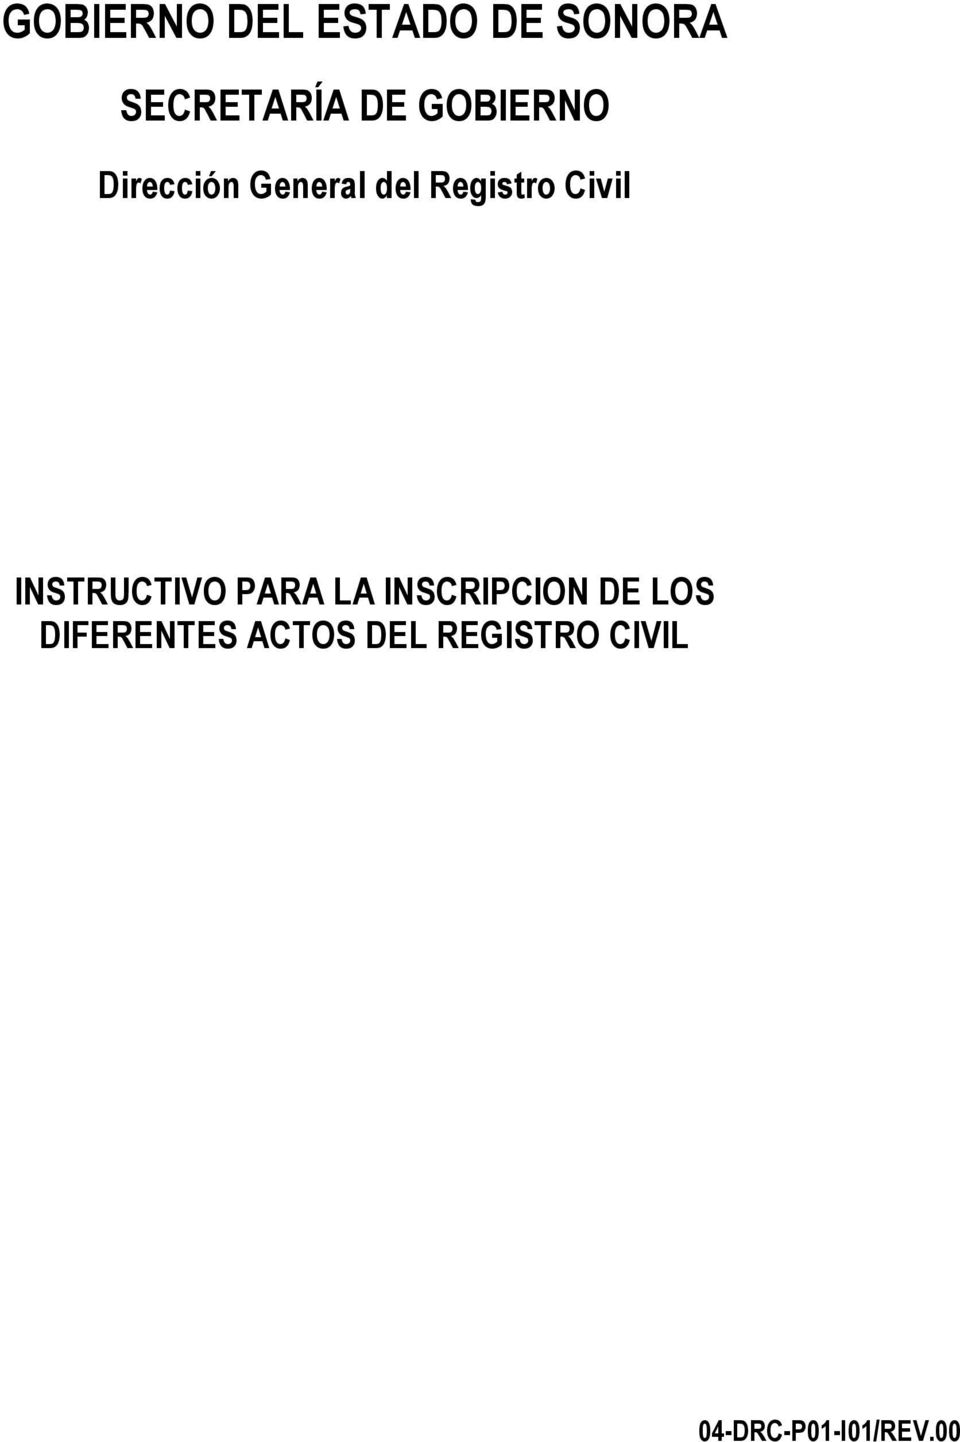 INSTRUCTIVO PARA LA INSCRIPCION DE LOS